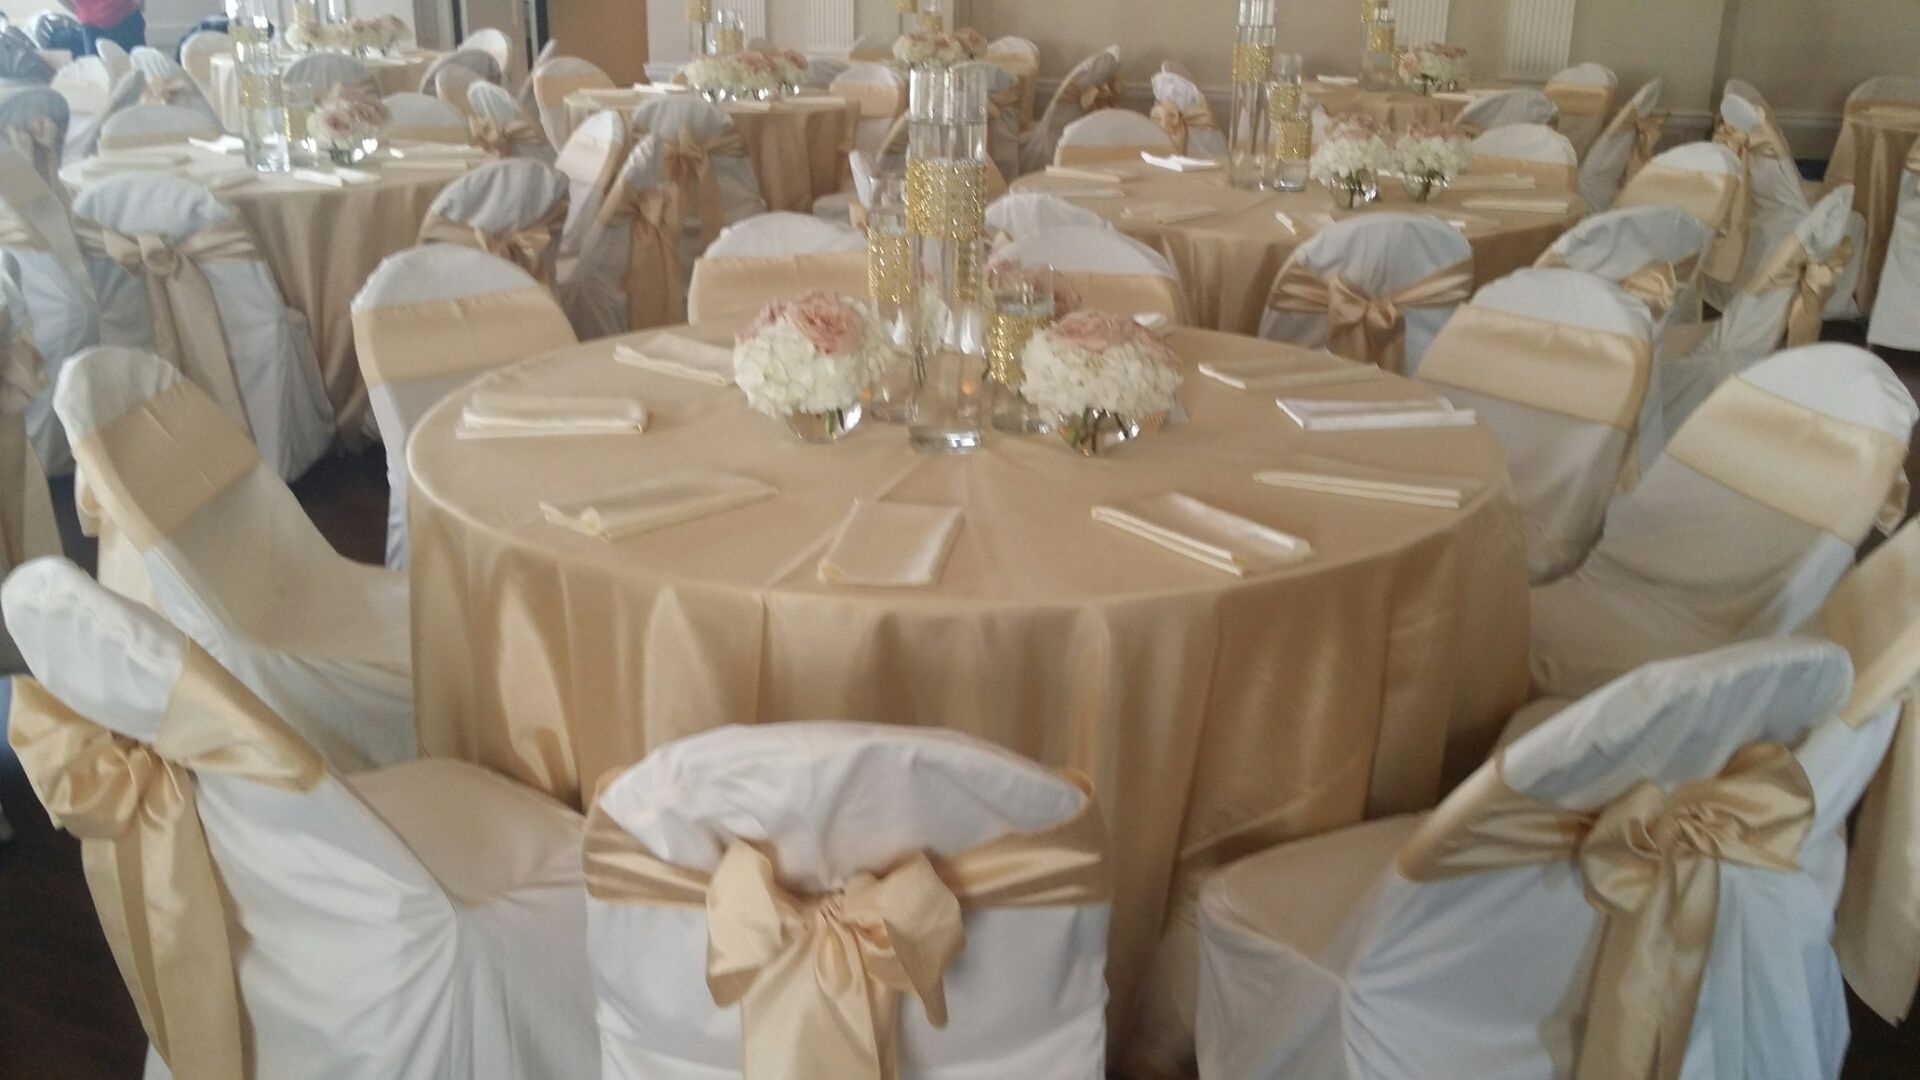 Luxury Chairs For Wedding Soft Gold Shantung Tablecloths And Chair Sashes Ivory